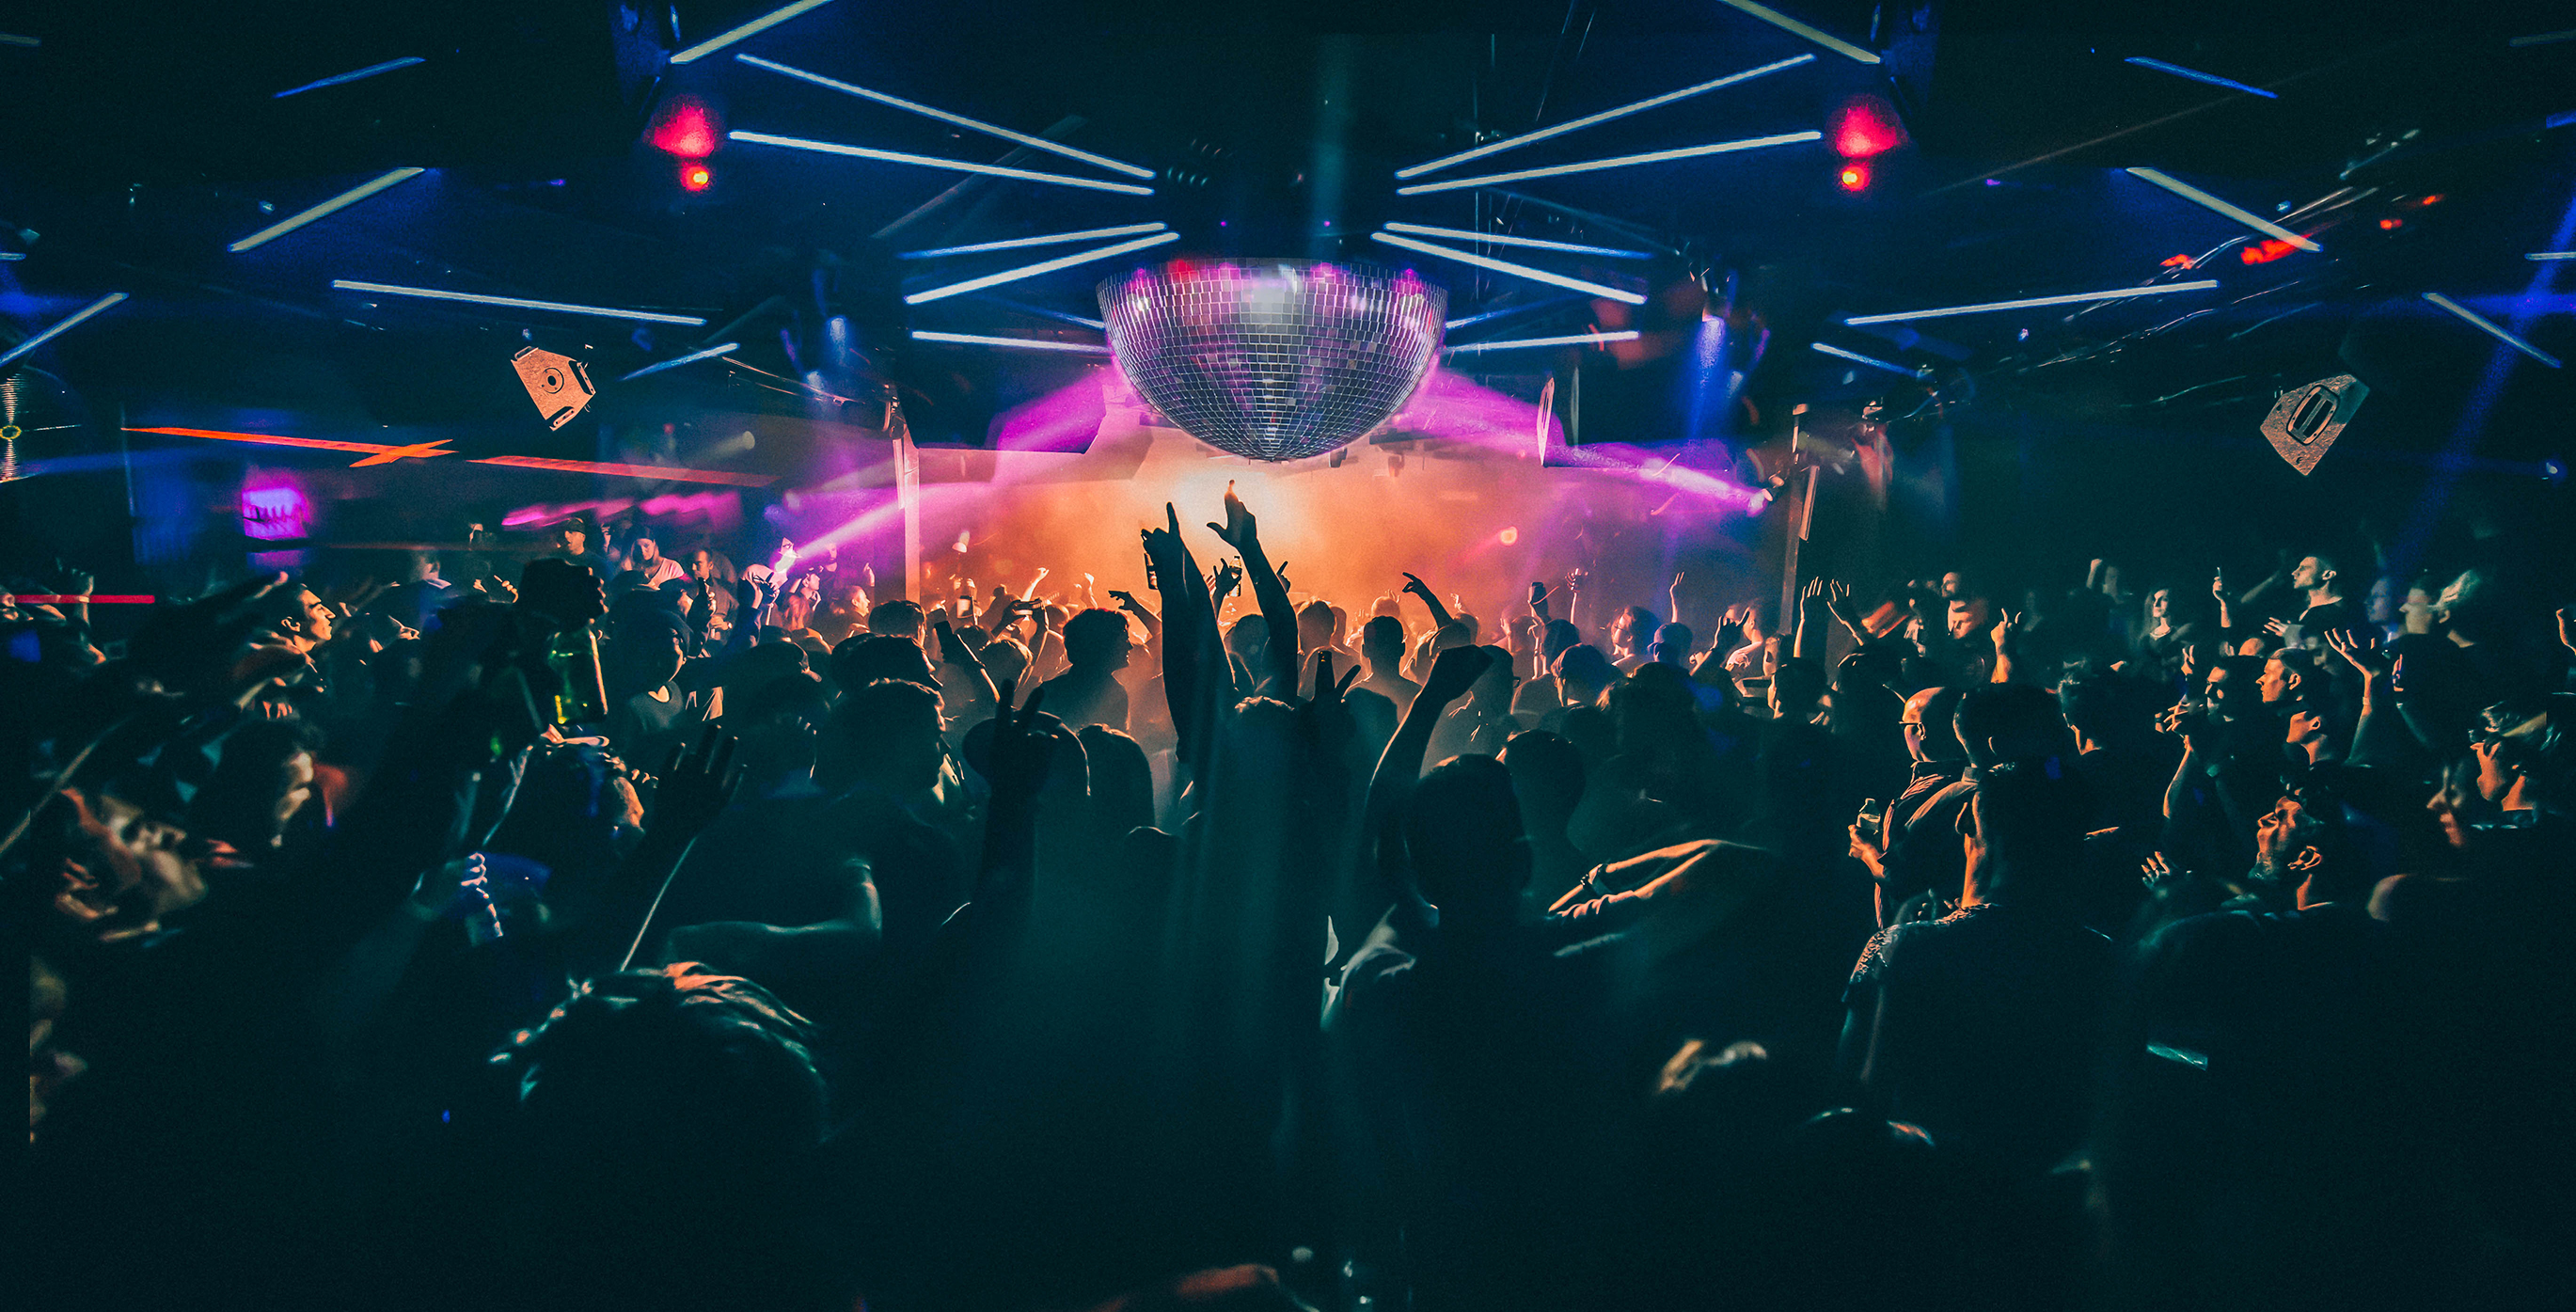 CODA nightclub in Toronto, photographed by Alec Donnell Luna